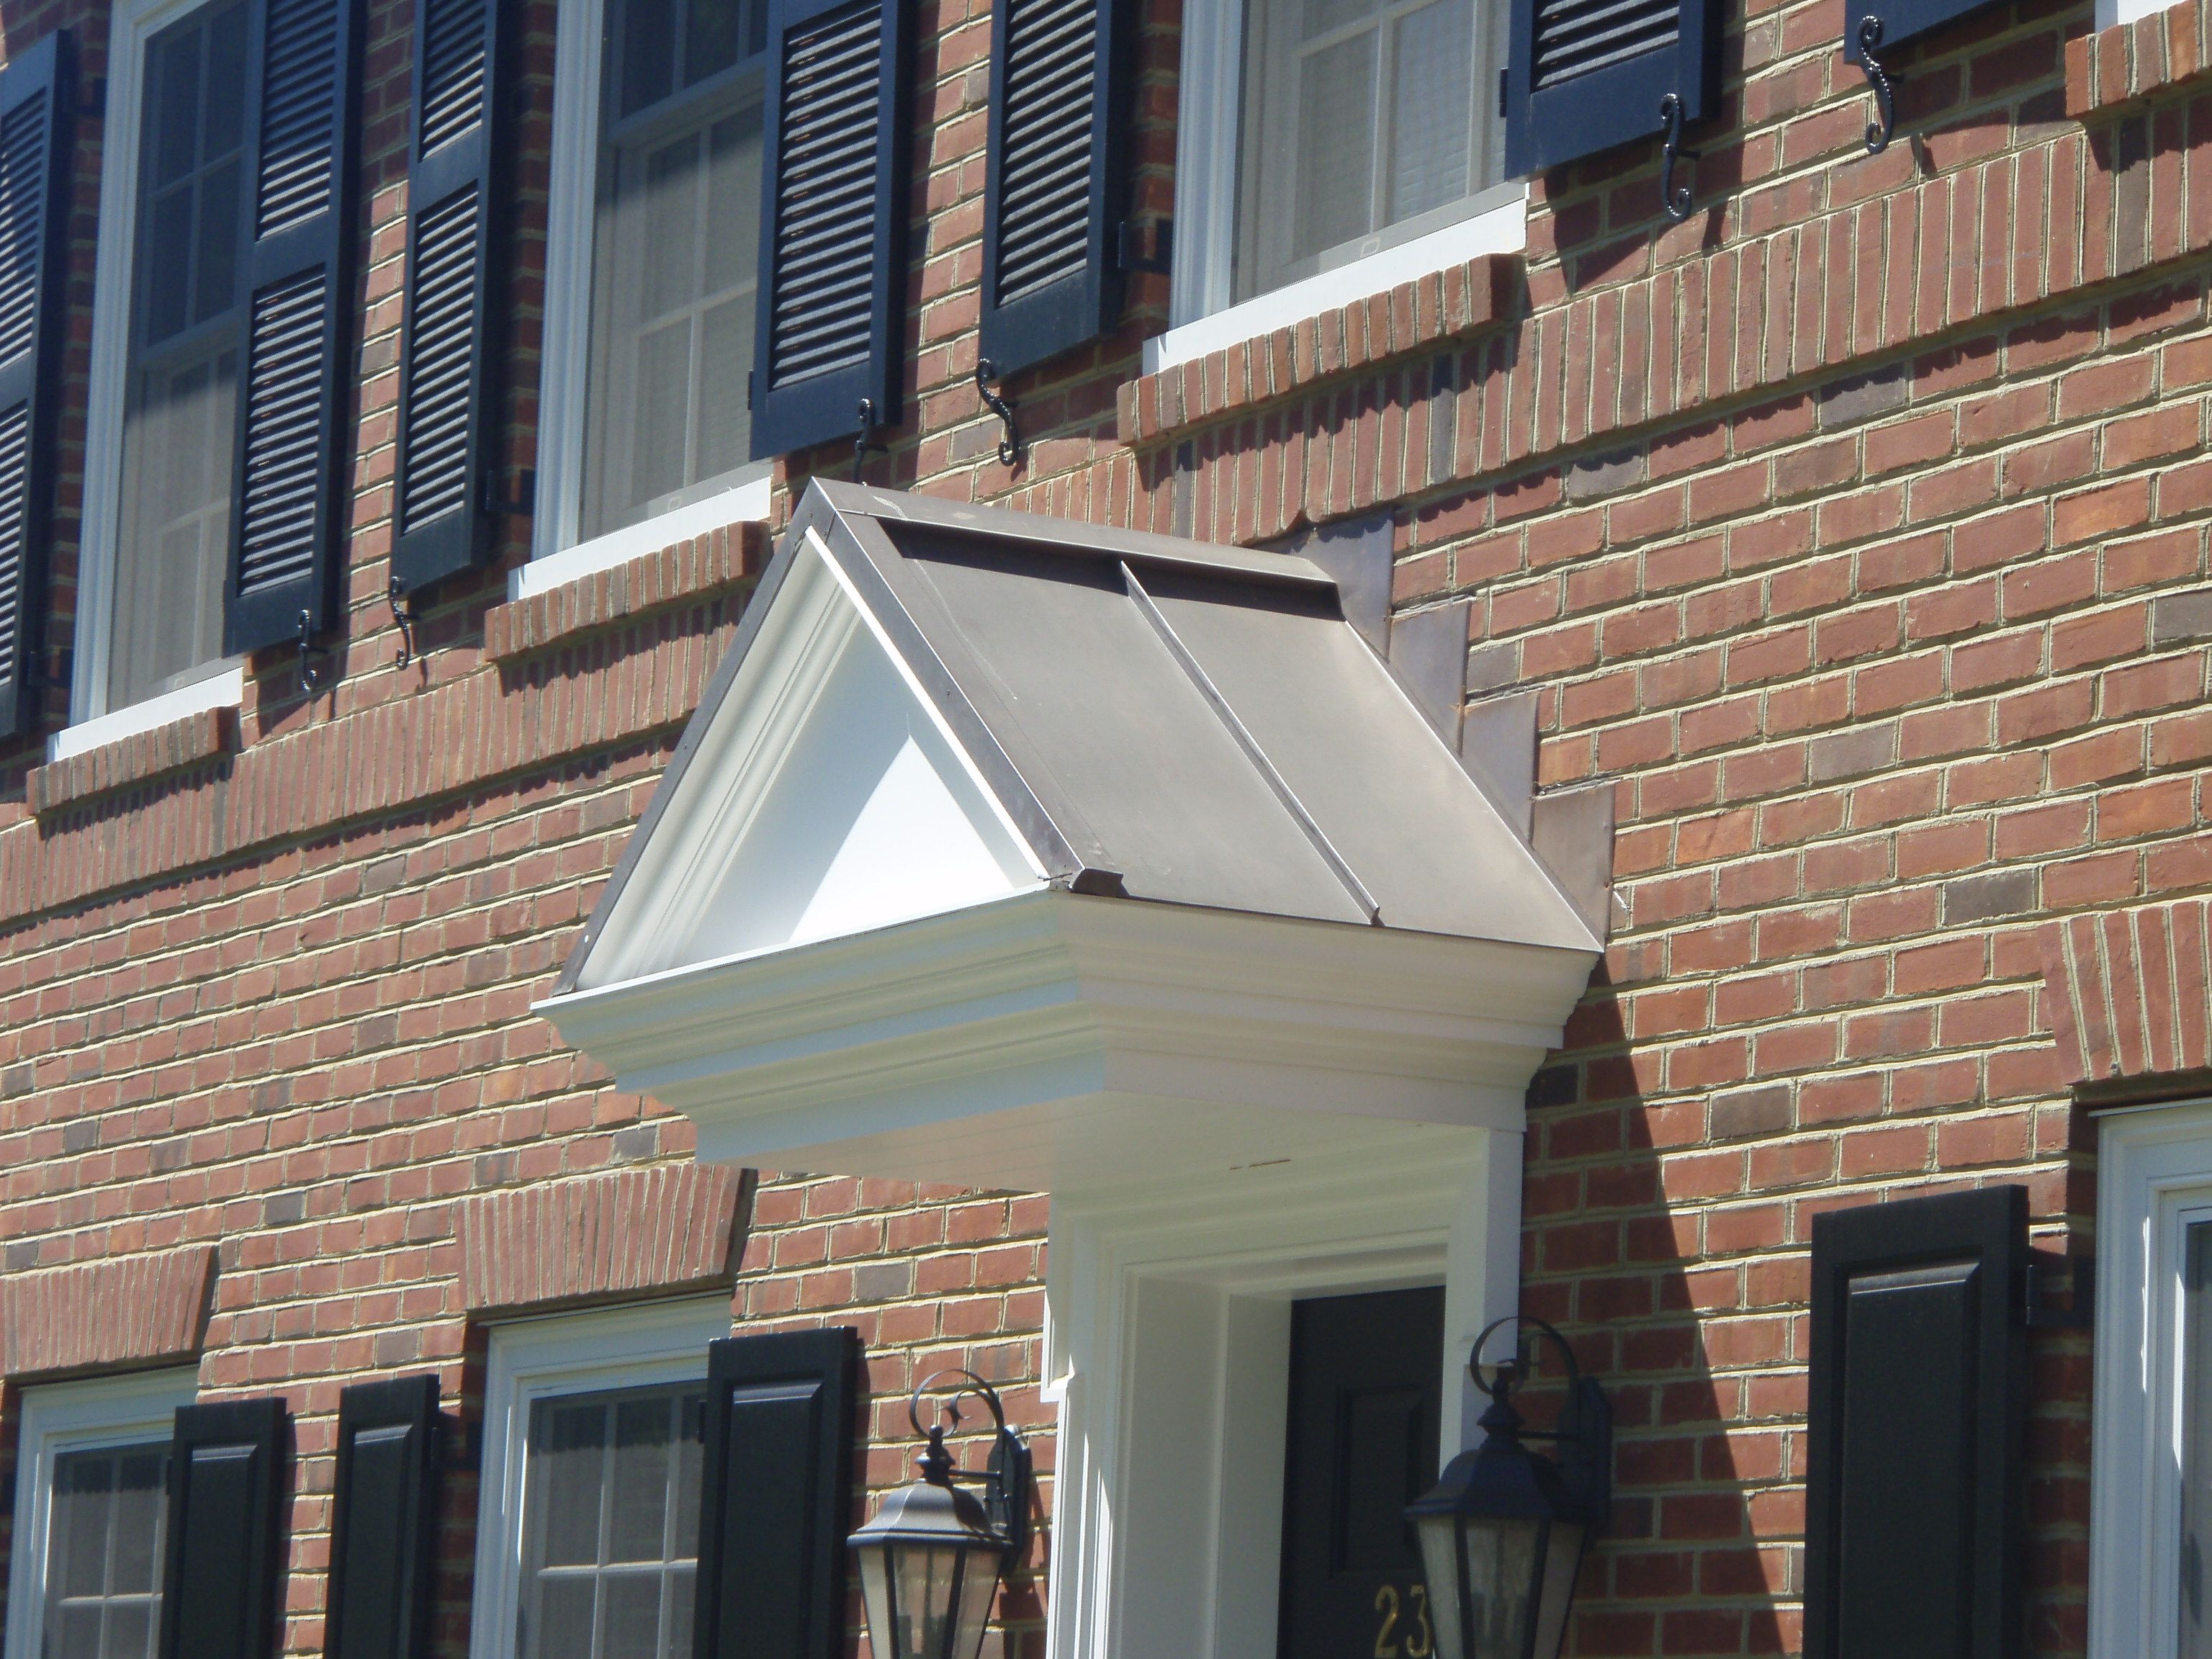 Slightly Aged Copper A Frame Standing Seam Roof Over Door Way Dutch Gable Roof Architectural Shingles Metal Roof Cost